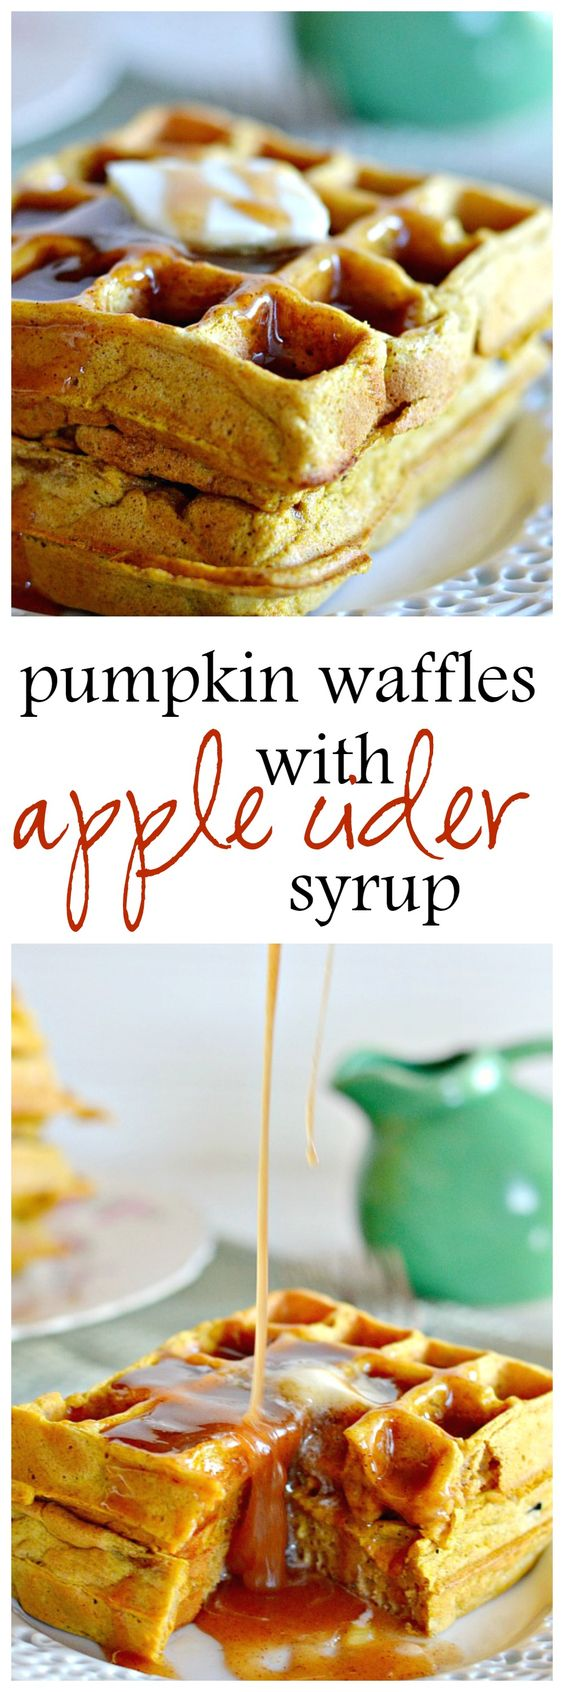 apple cider syrup pumpkin waffles apples pumpkins waffles meet girls ...